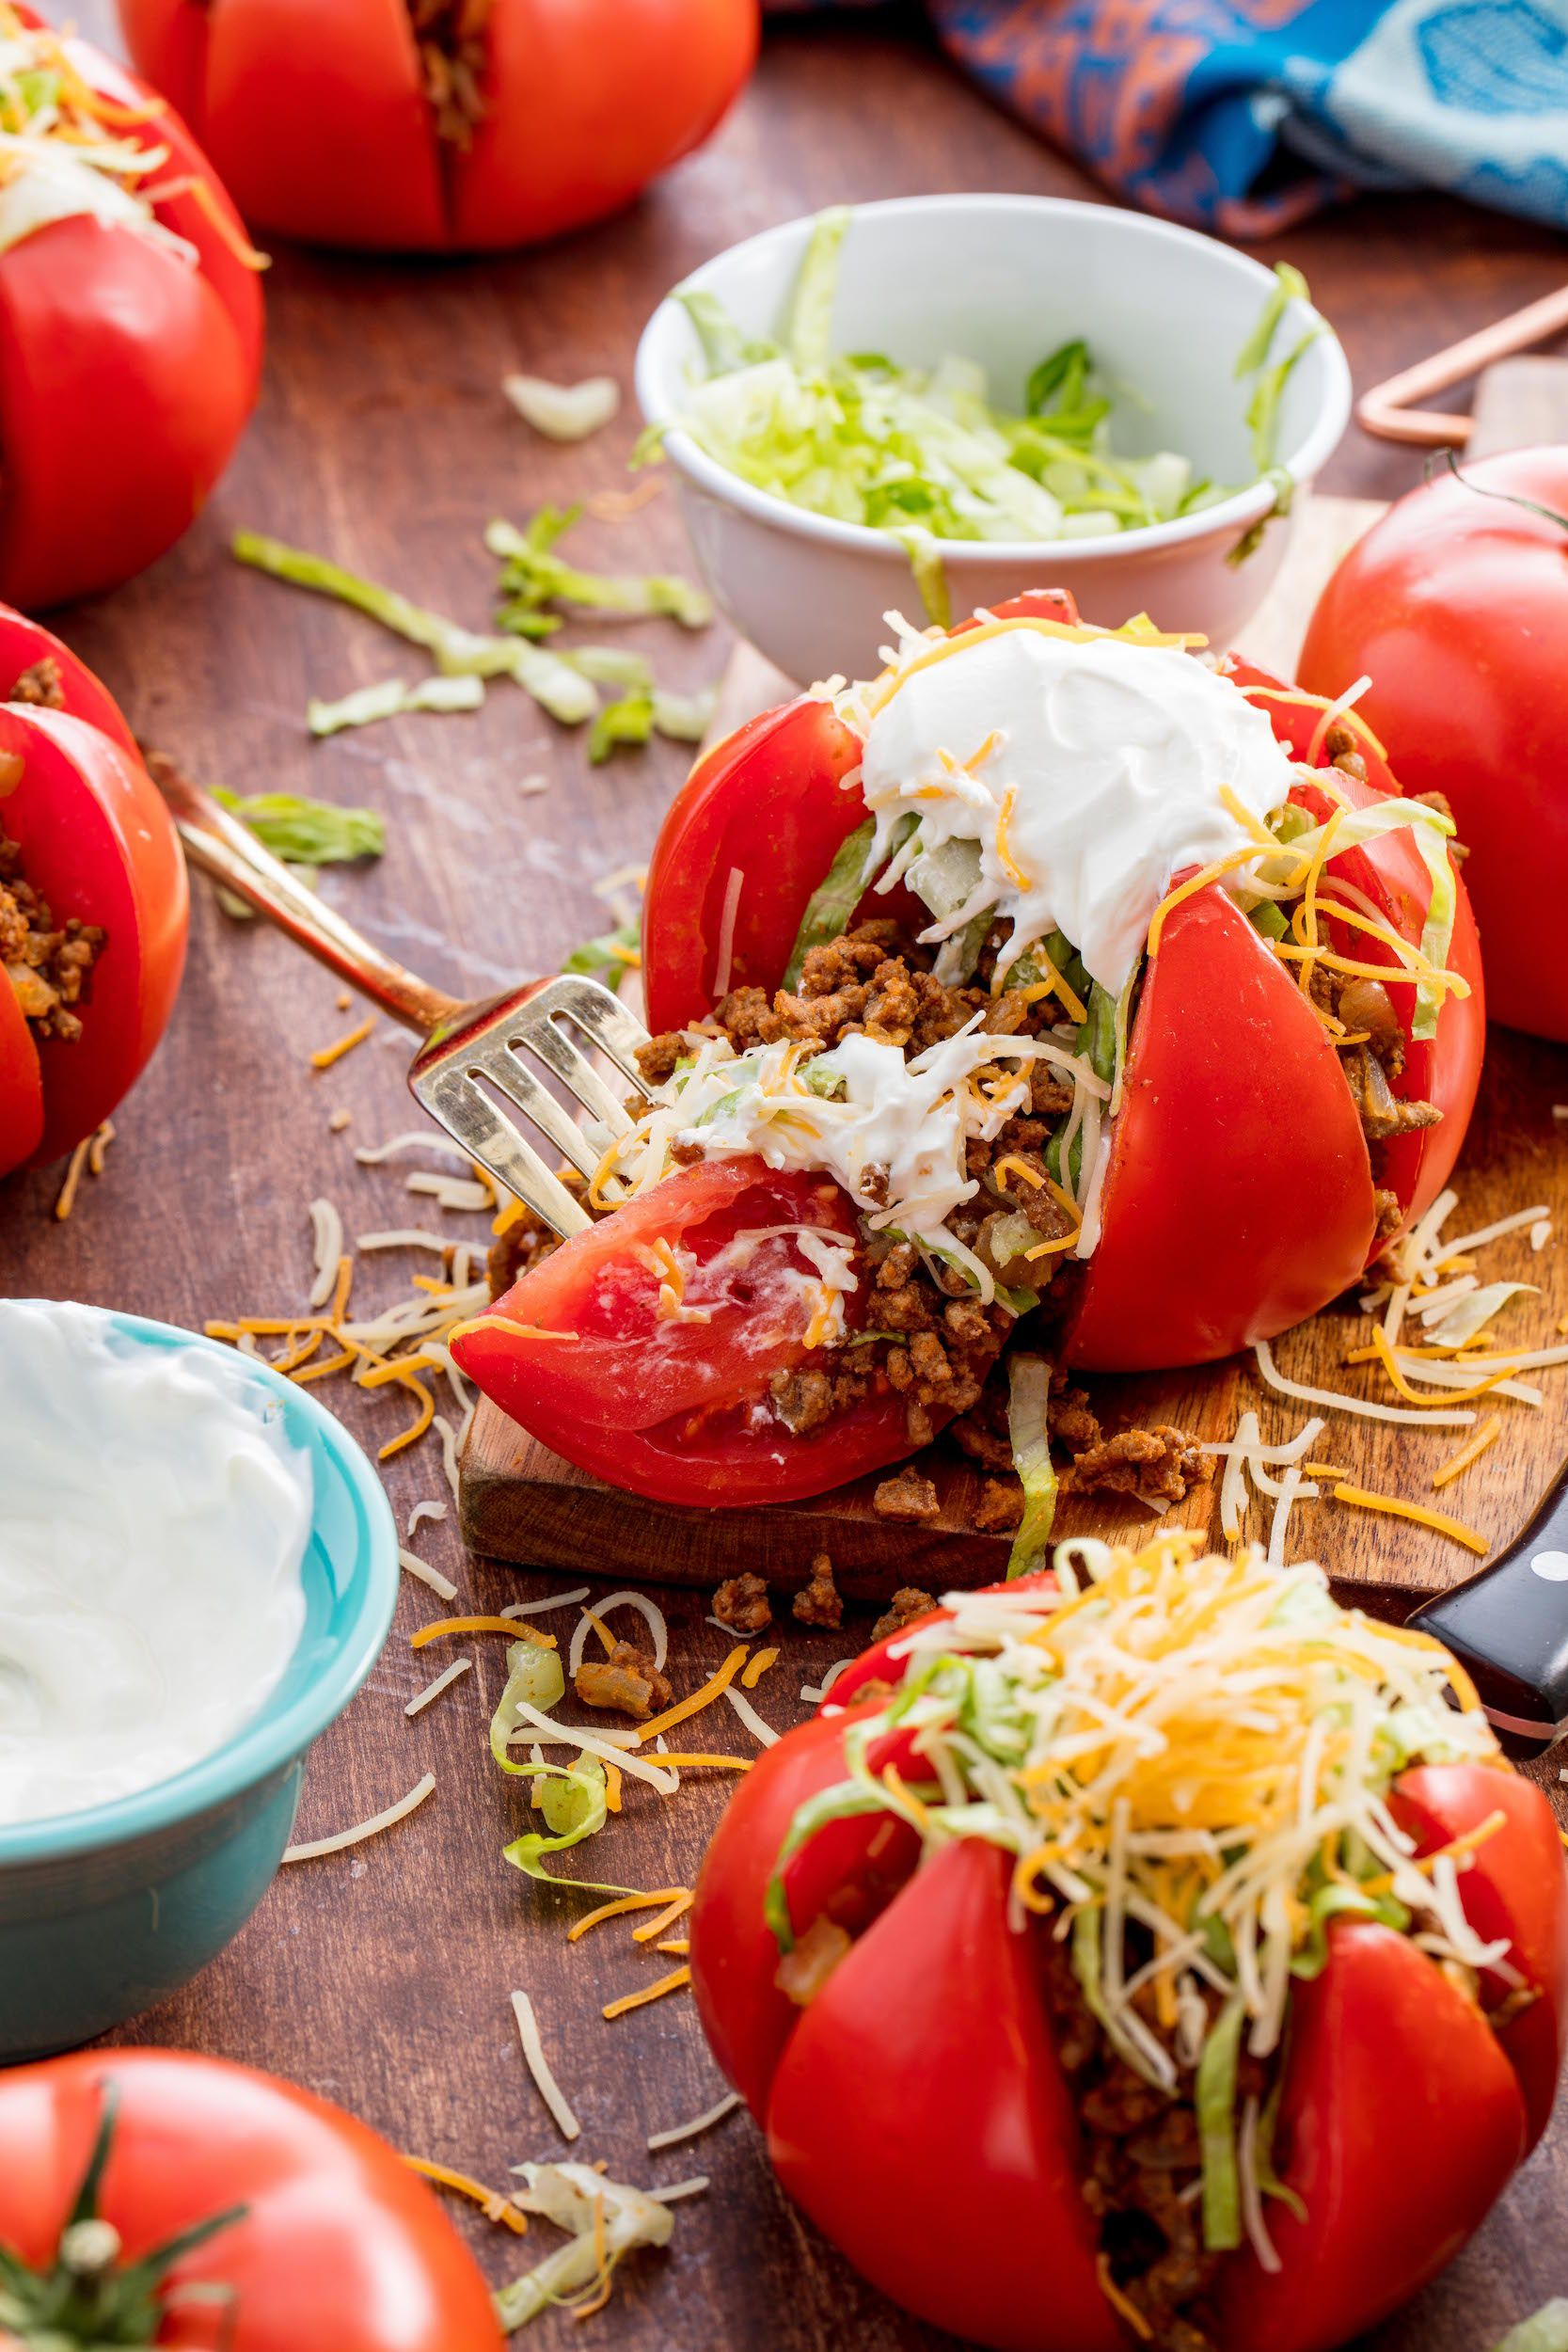 Best Taco Tomatoes Recipe - How to Make Taco Tomatoes